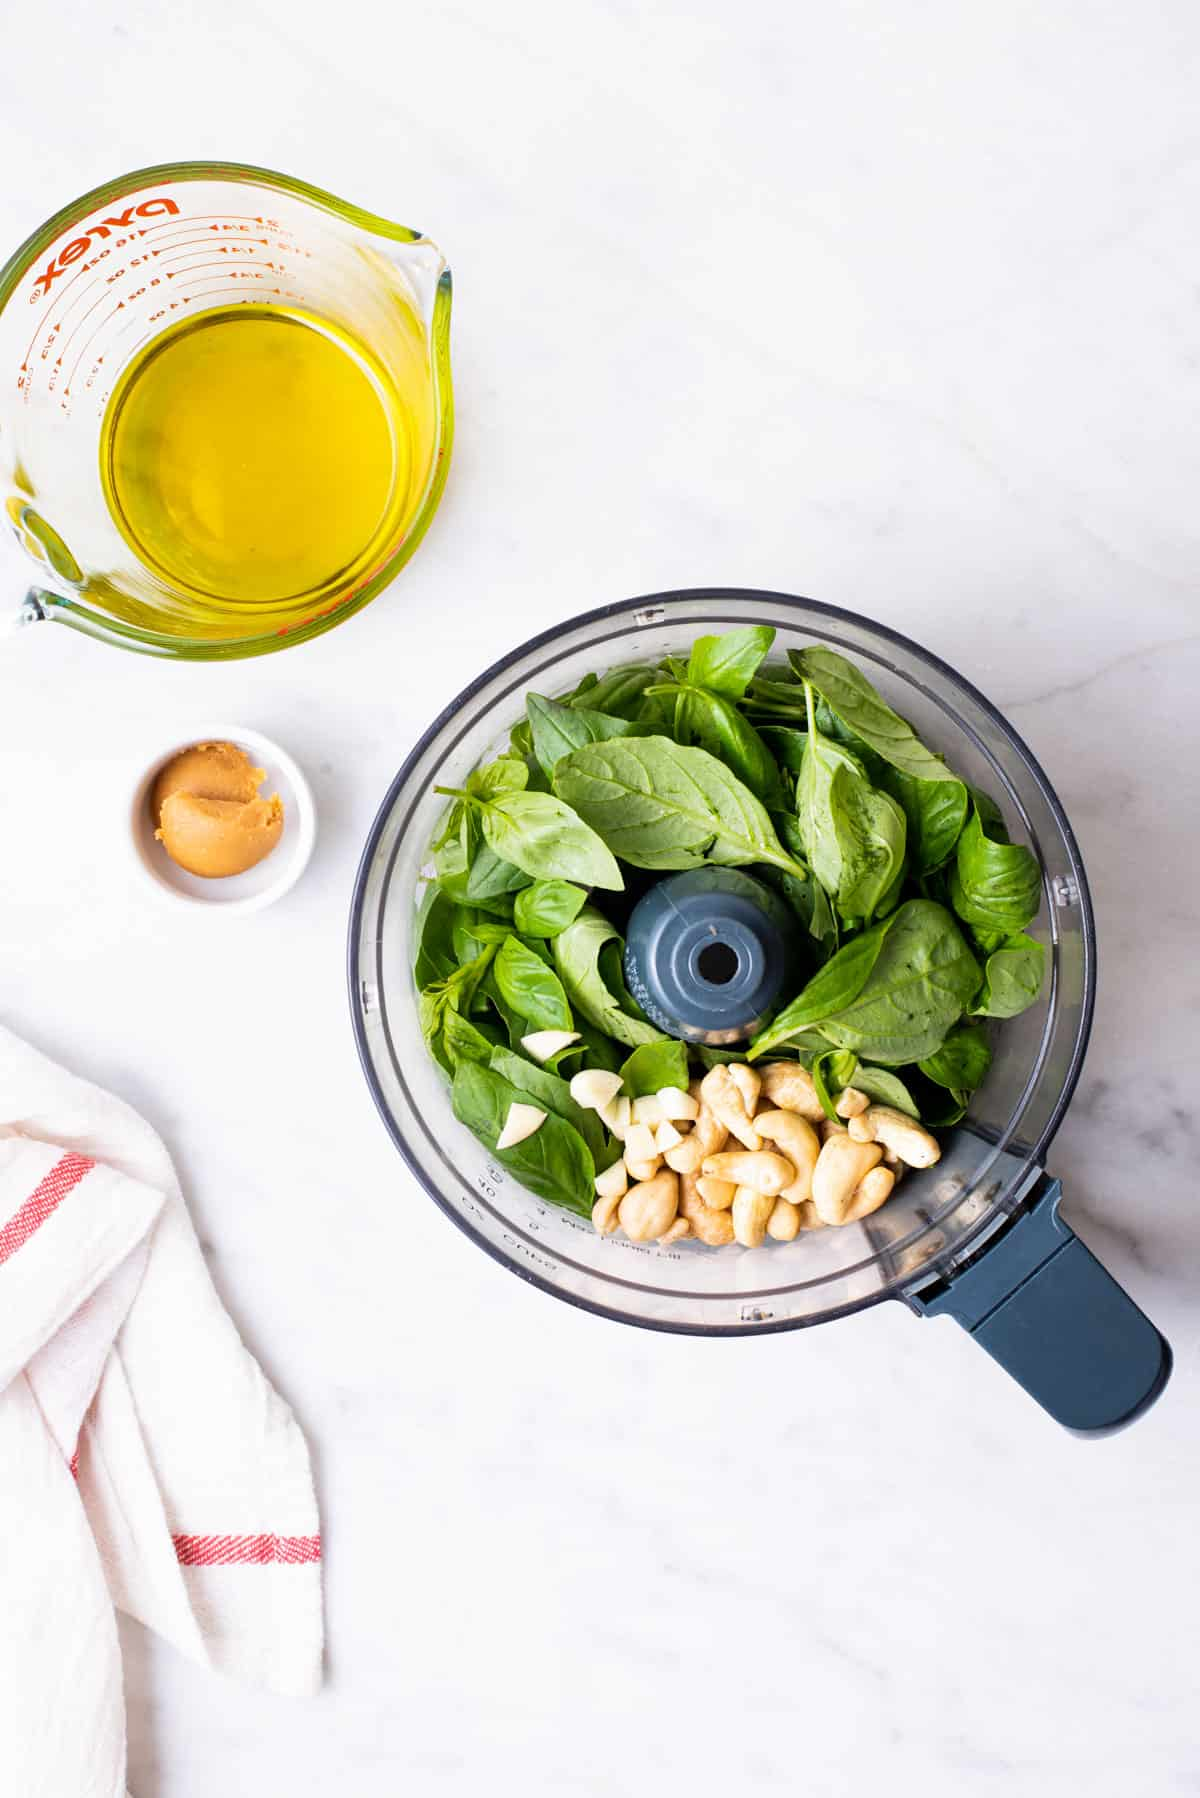 Basil, cashews, and garlic in a food processor next to a Pyrex measuring cup with olive oil.